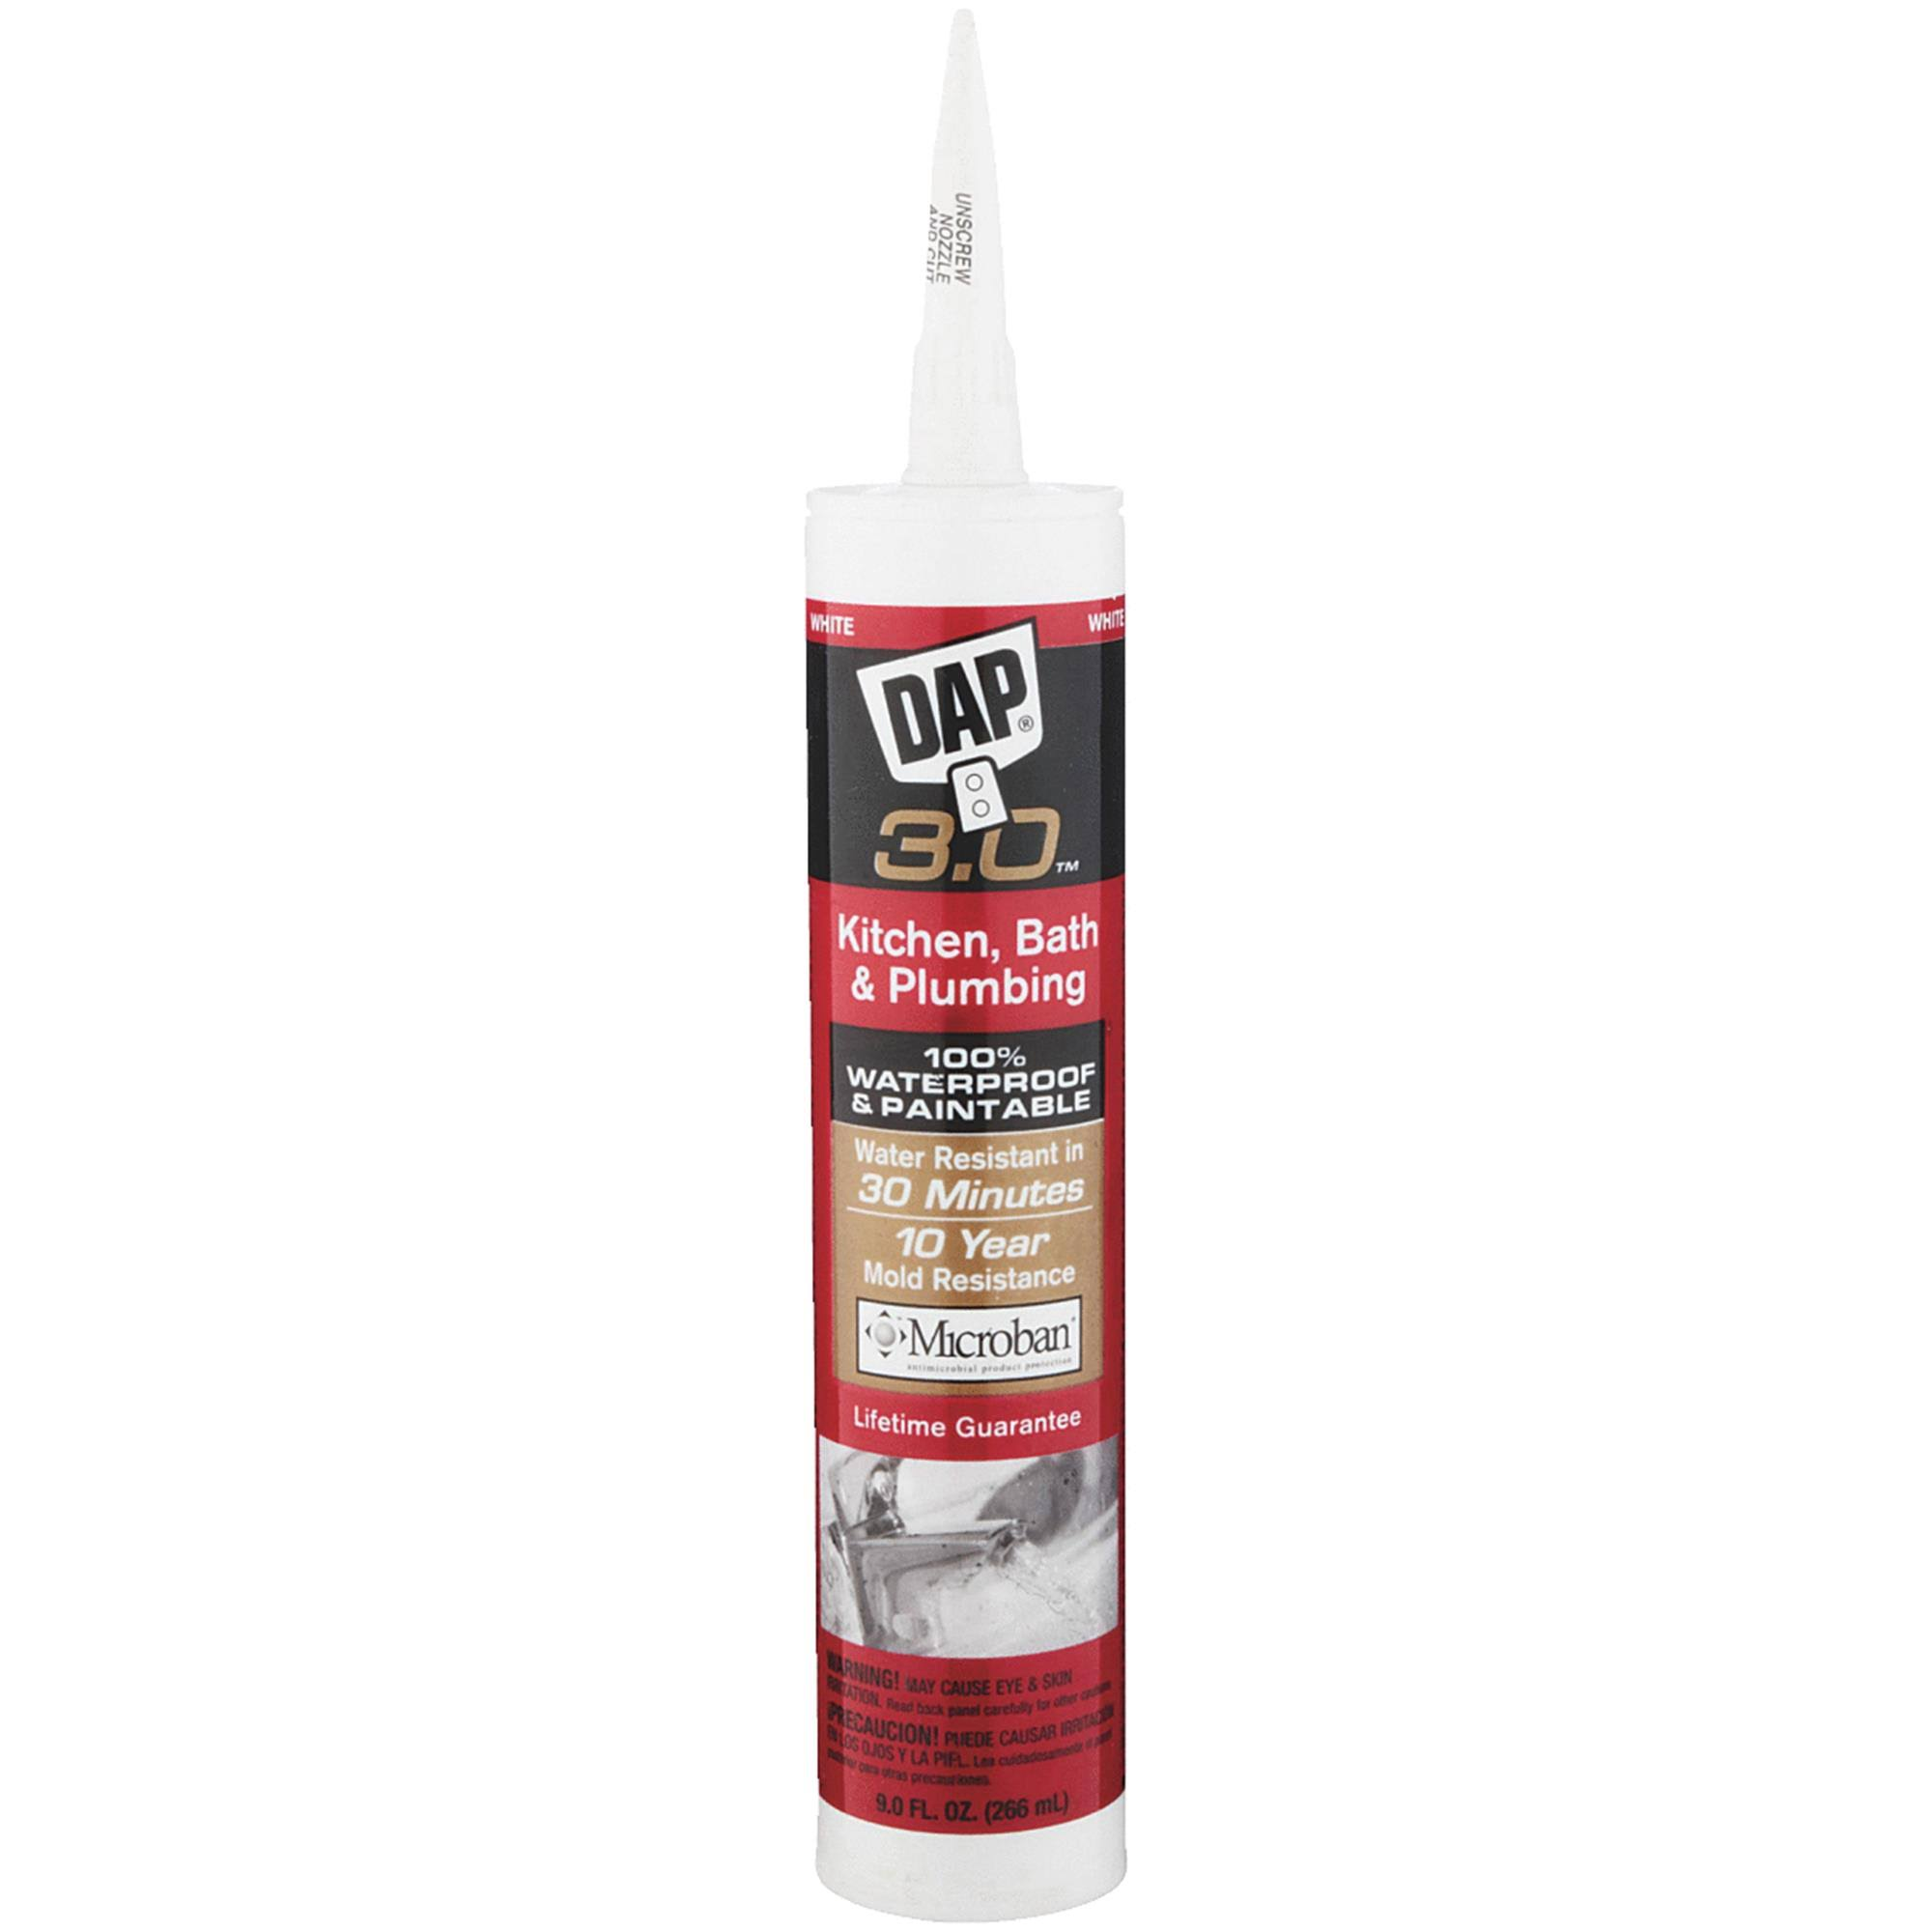 DAP Kwik Seal Kitchen and Bath Caulk - 9.8oz, White